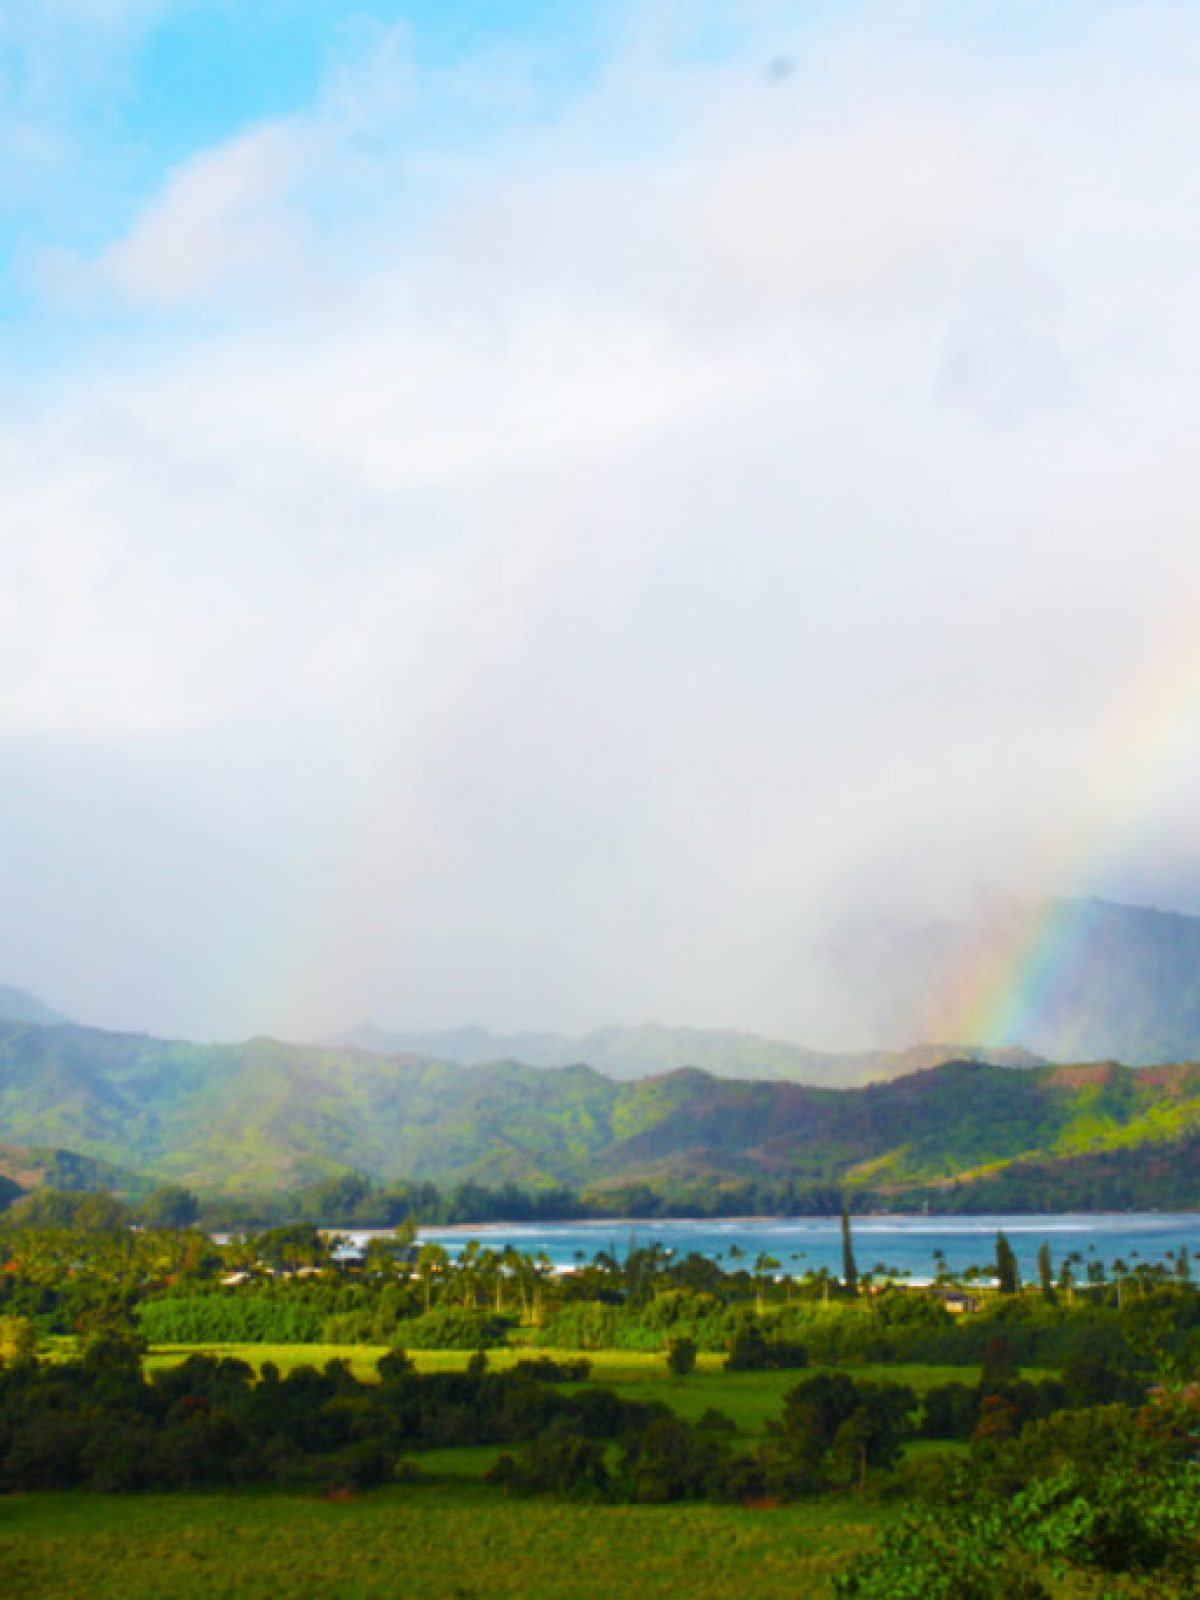 where to stay in kauai, hawaii, the cliffs at princeville, koa kea resort, airbnb, kapuna hale, travel